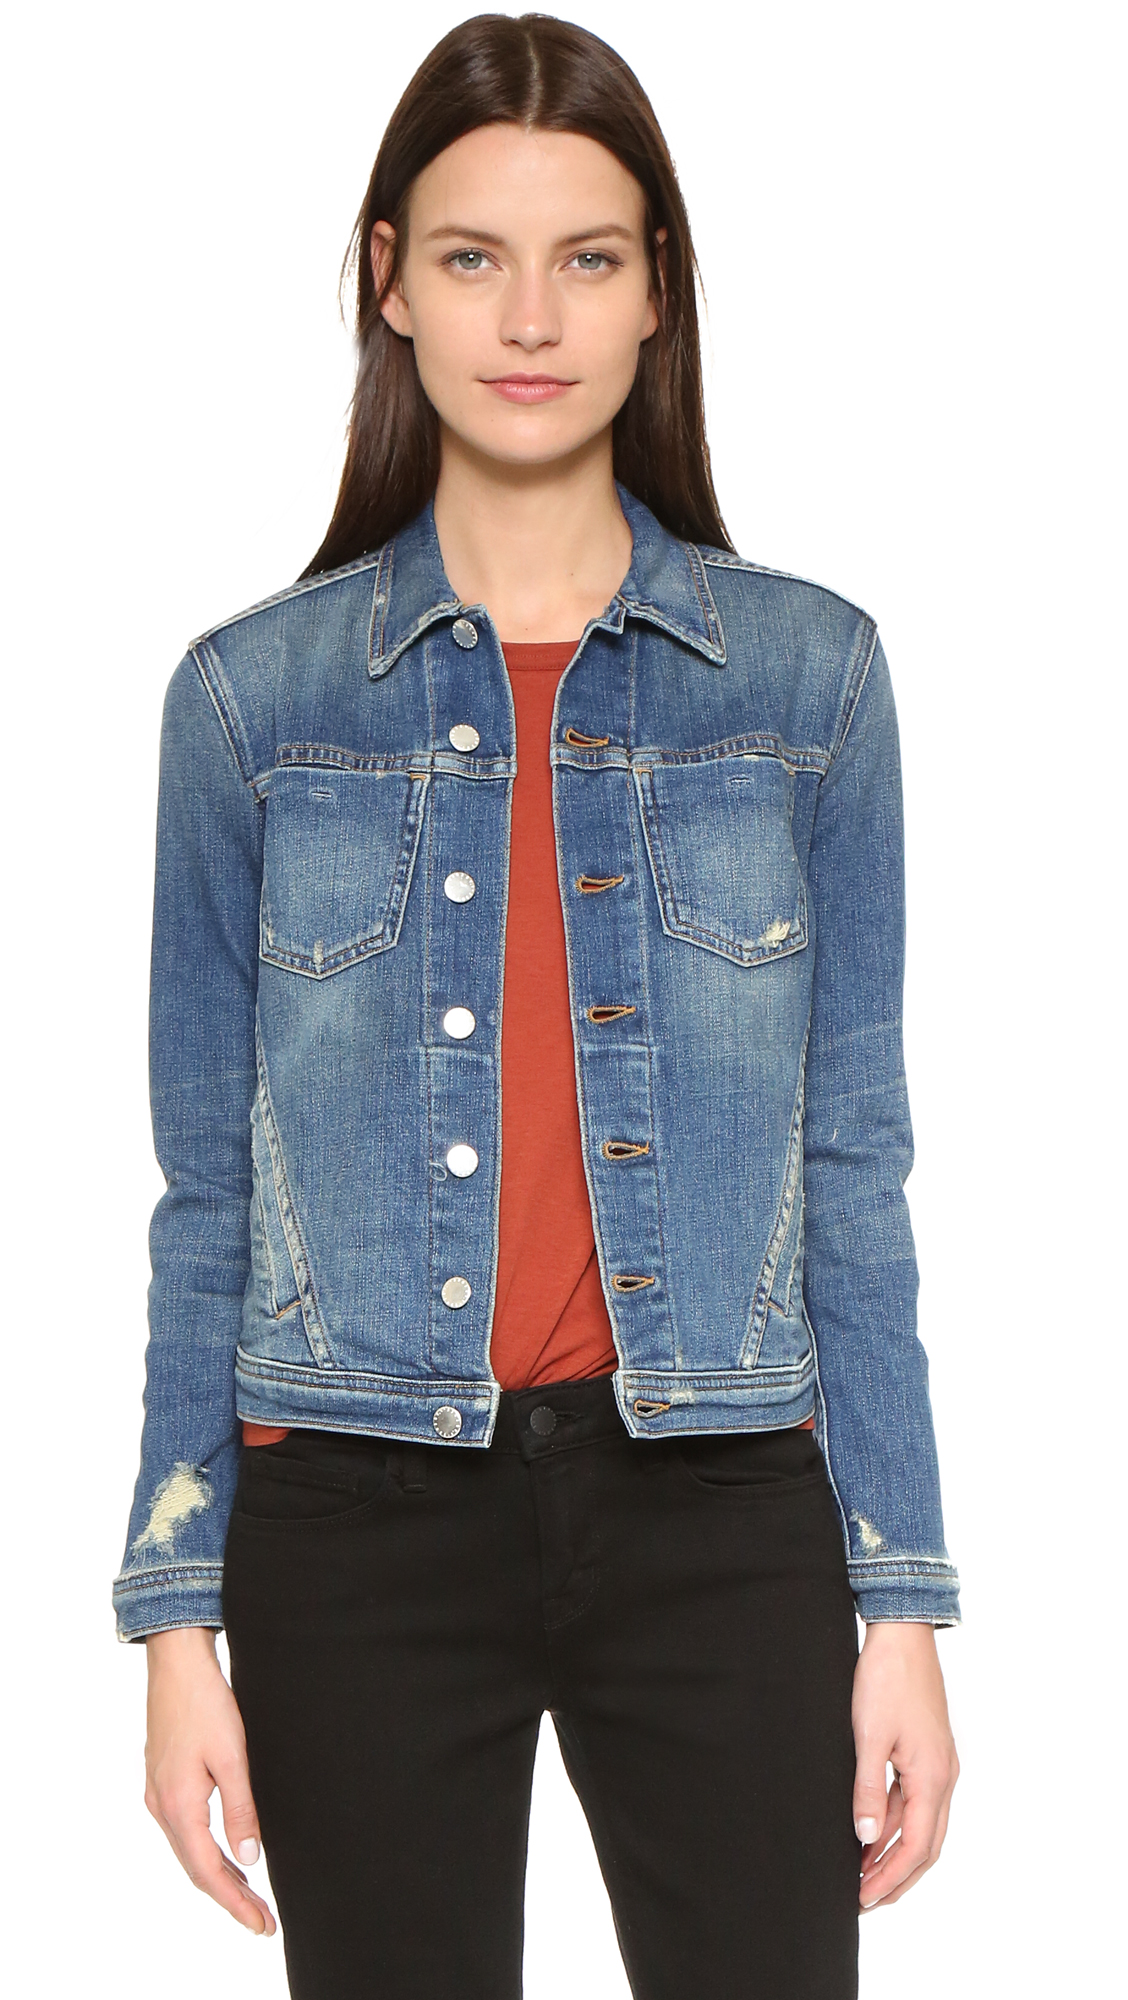 LAGENCE Celine Slim Fit Distressed Jacket - Authentique Distressed